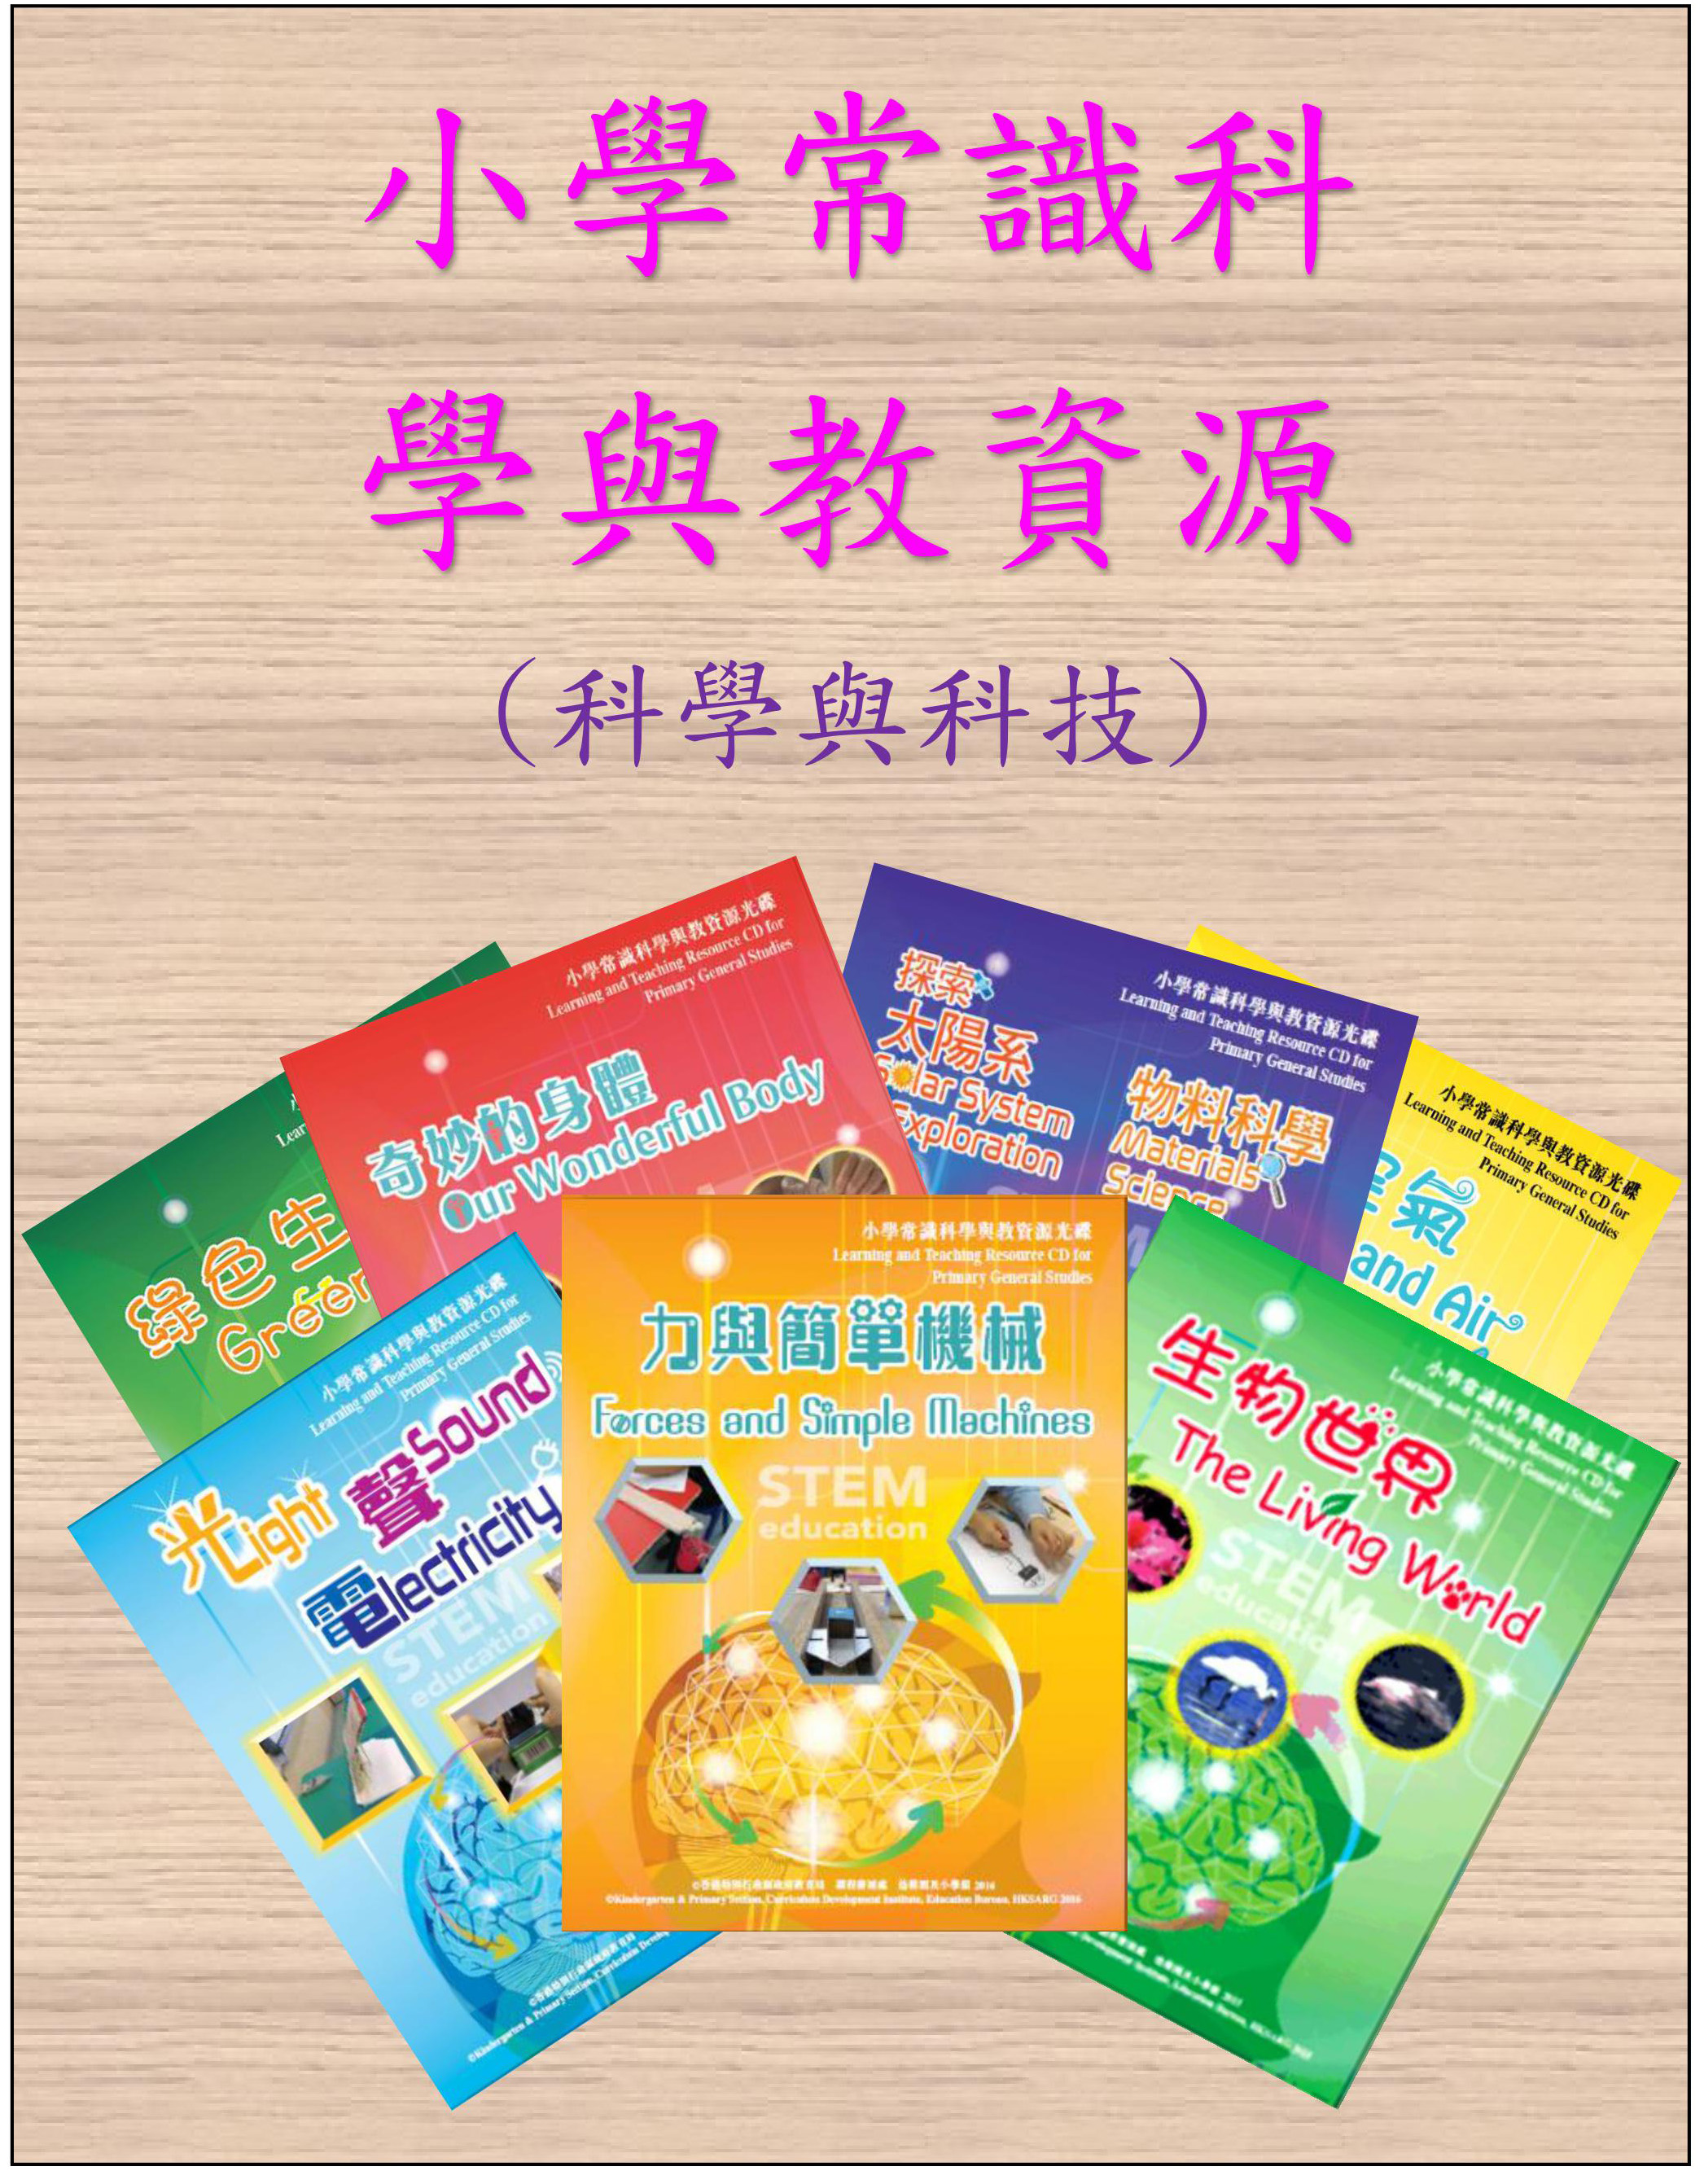 General Studies for Primary Schools